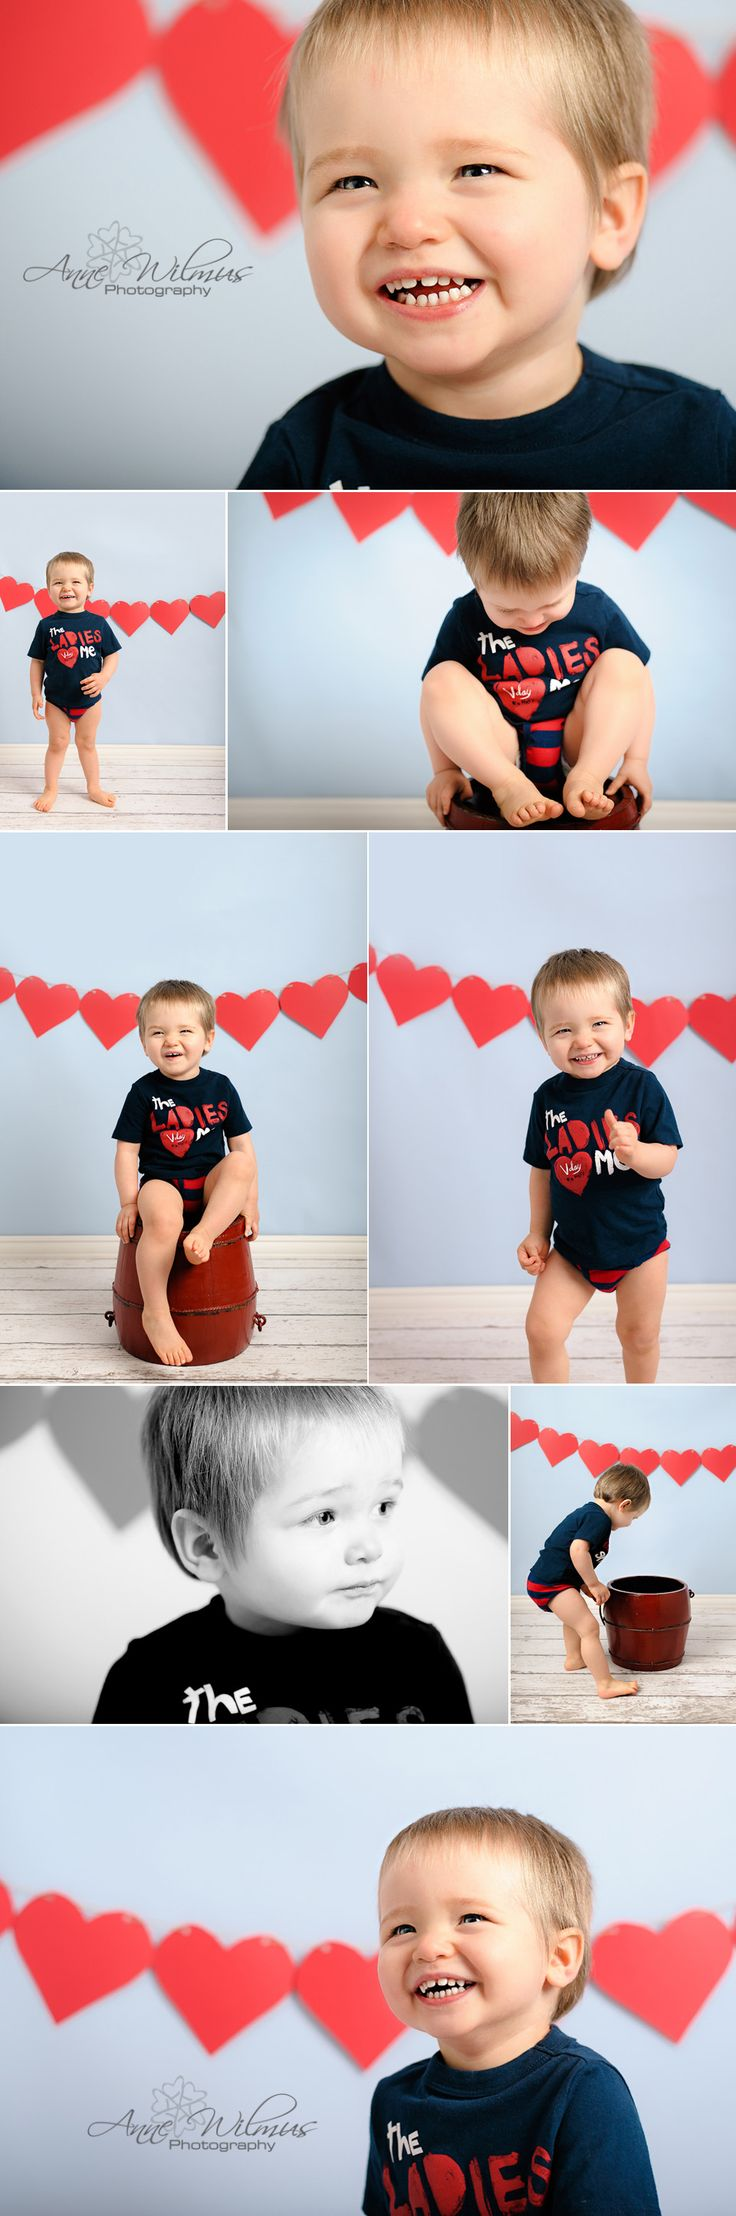 Valentine's Day Baby Toddler Photo Ideas, Old Navy T-shirt, Anne Wilmus Photography, Pittsburgh Baby Photographer 2